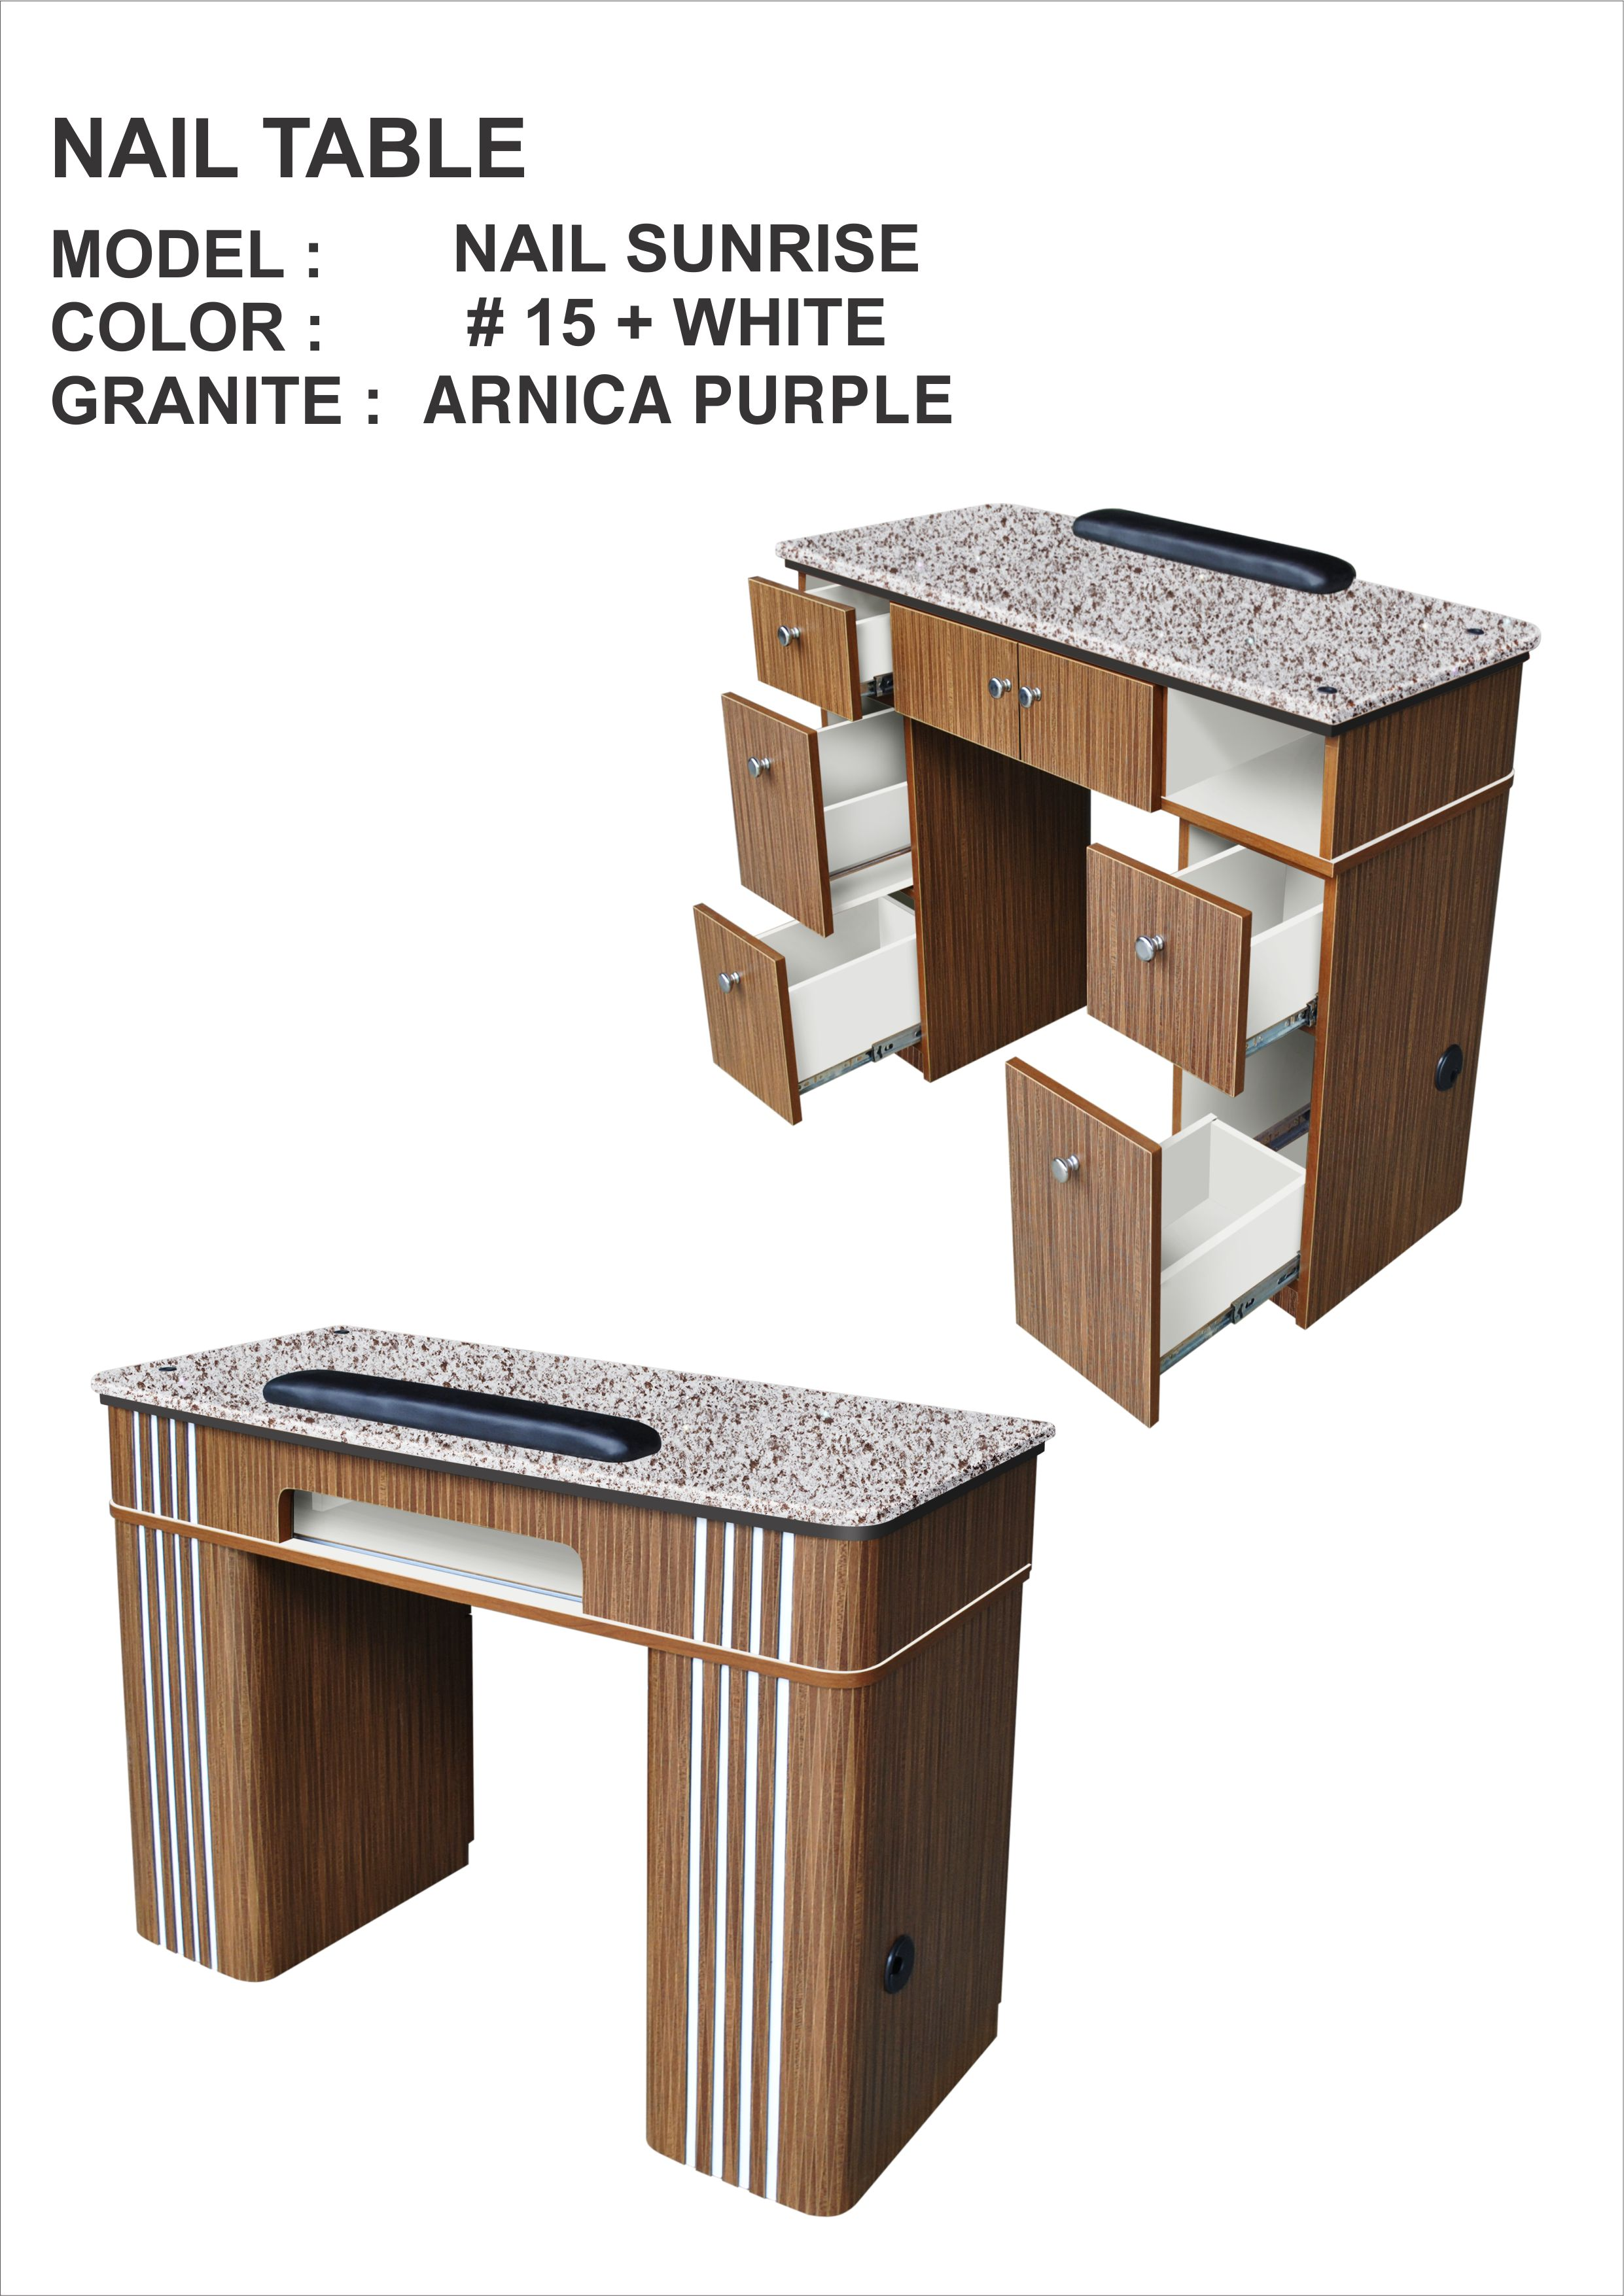 return via right buying l nail cover first with free office full table size plans compact kohls you see of should one shaped inch vanity before hutch mahogany desk design visio